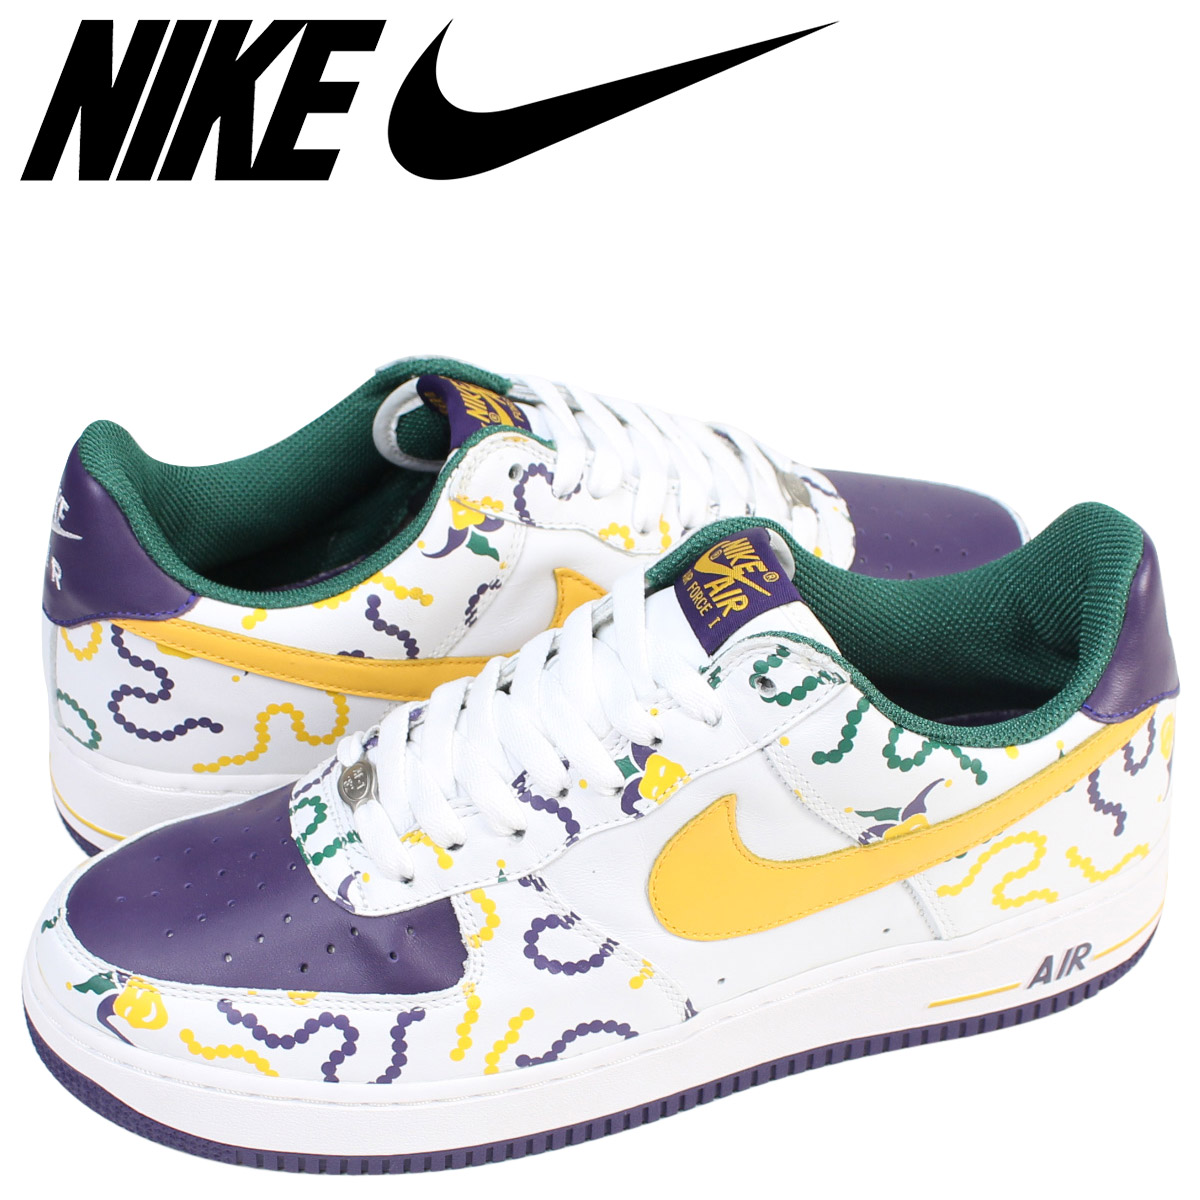 quality design dead3 f6430 Nike NIKE air force 1 sneakers AIR FORCE 1 LOW MARDI GRAS men 306,353-172  ...